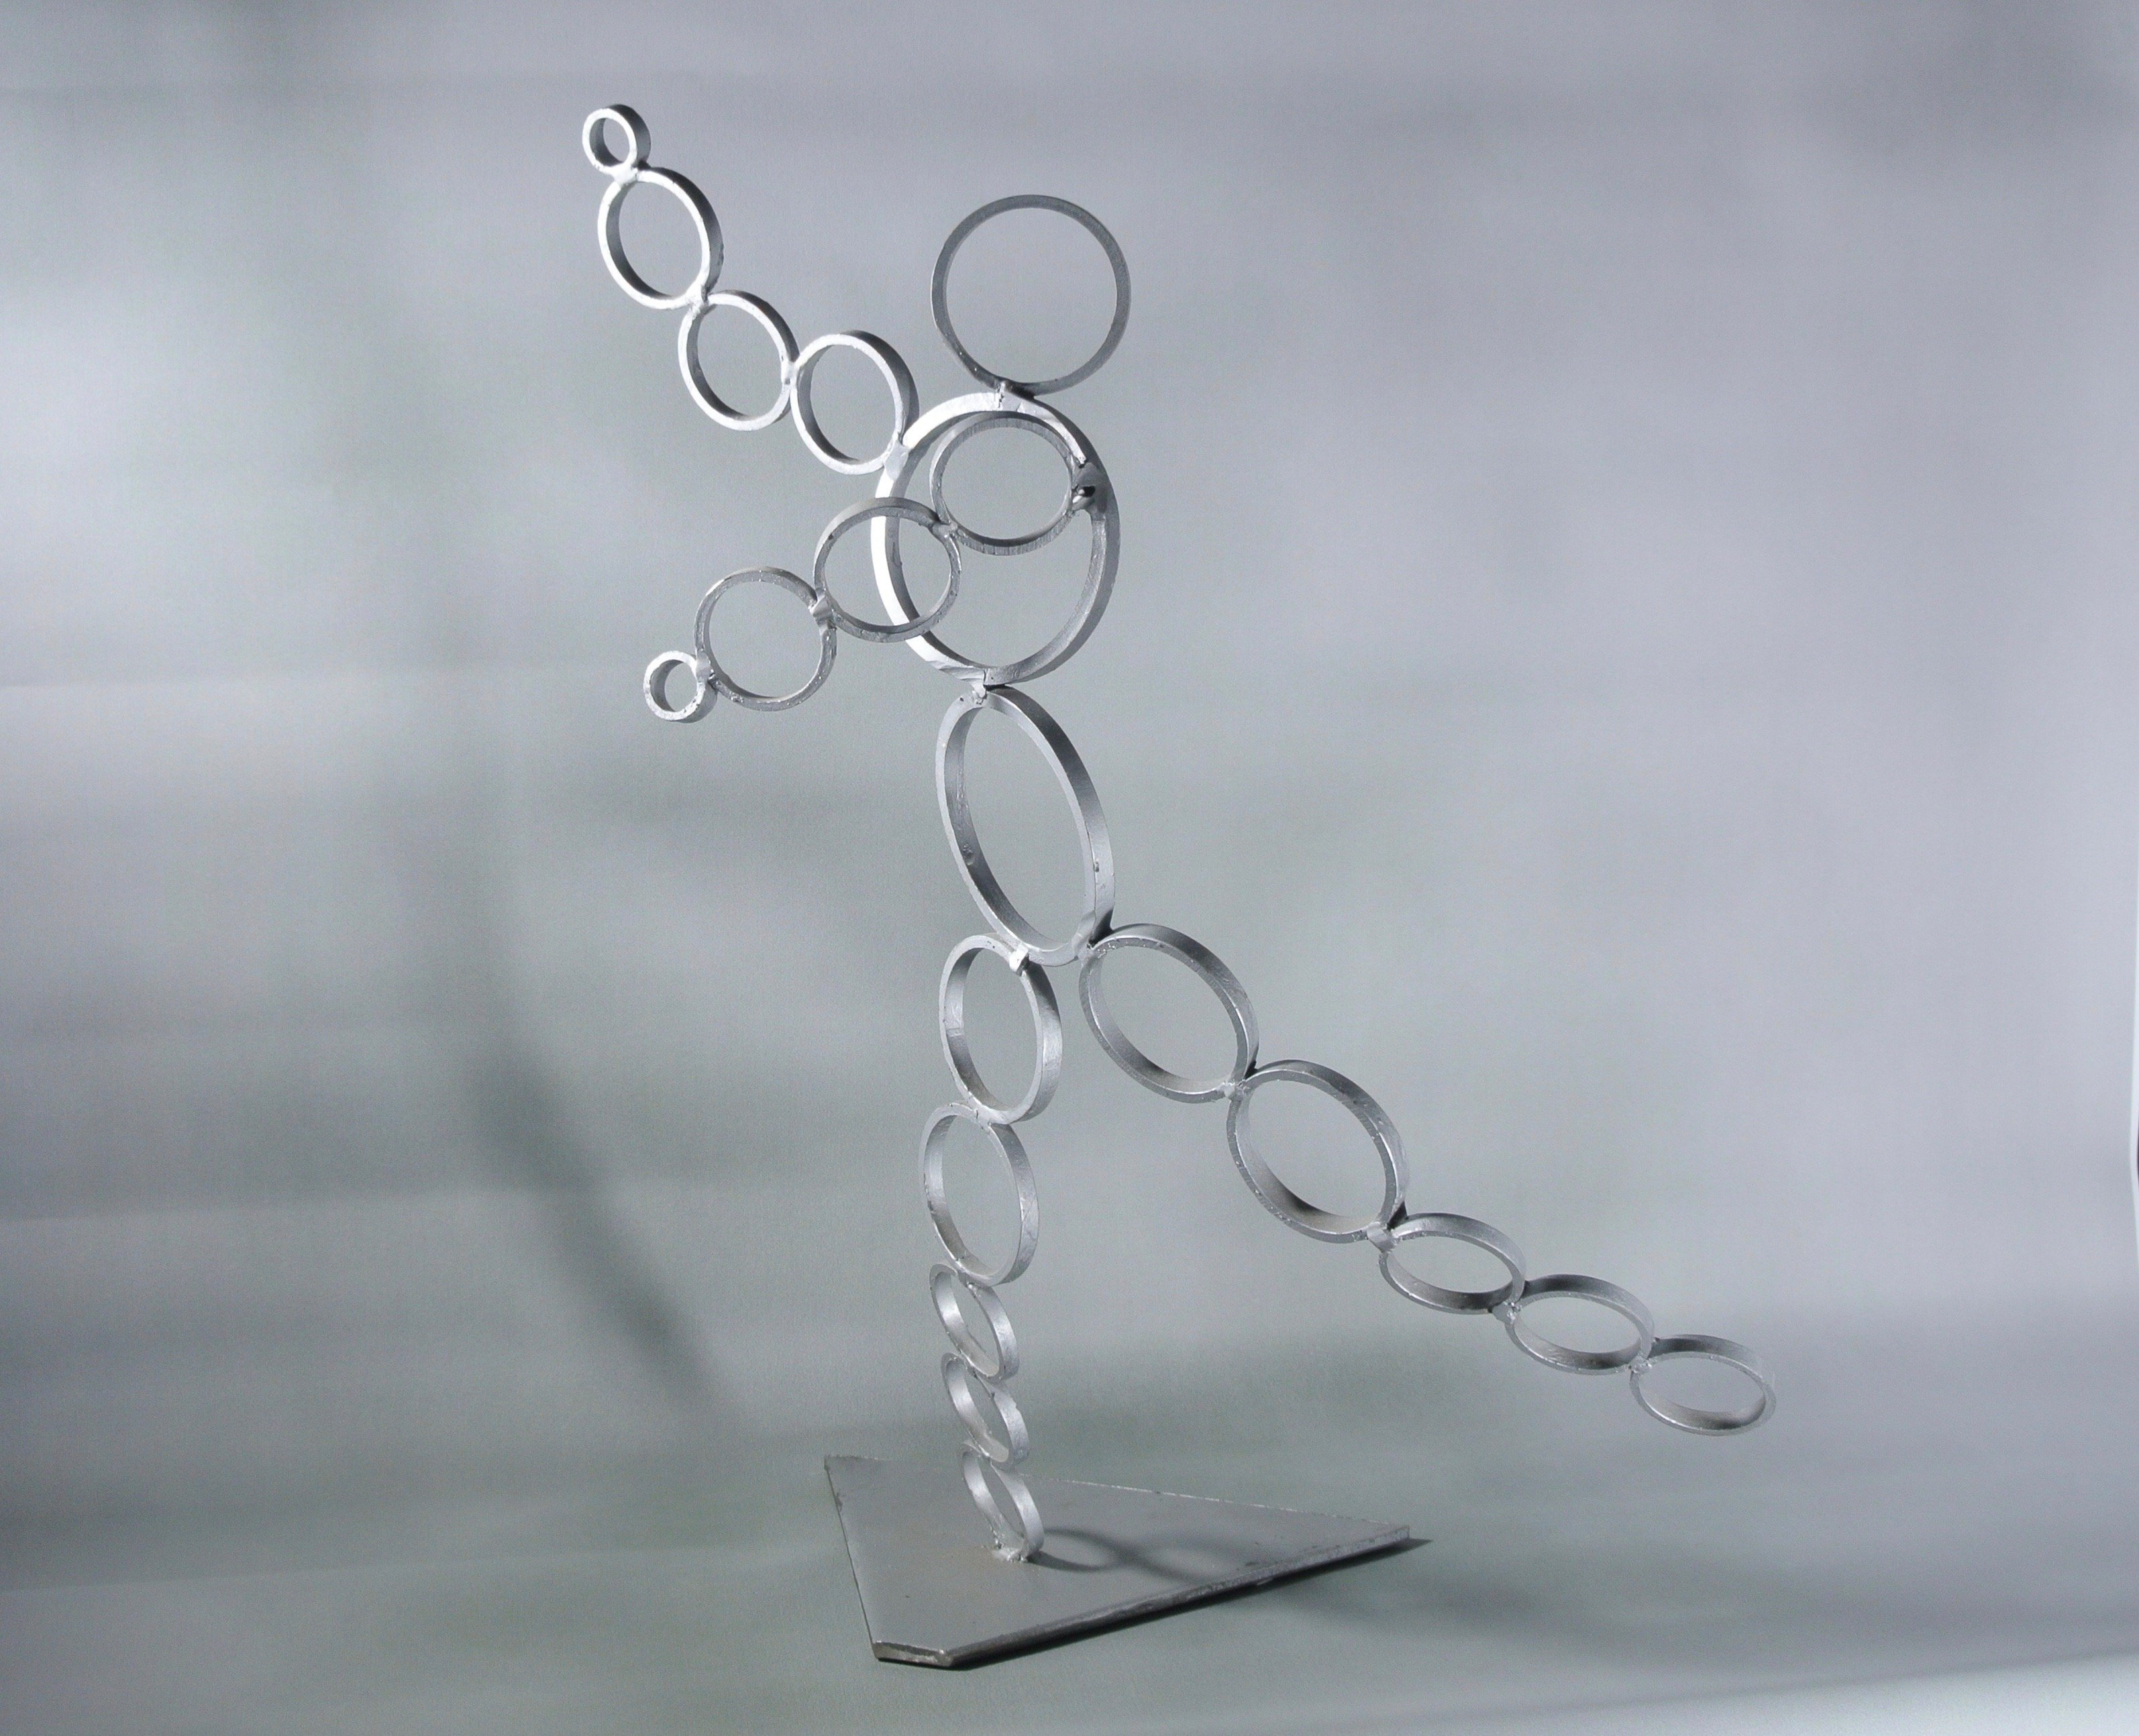 Diana Carey: 'The Dancer', 2015 Steel Sculpture, Abstract. Artist Description: Flowing movement of a dancer. Steel sculpture abstract tabletop...